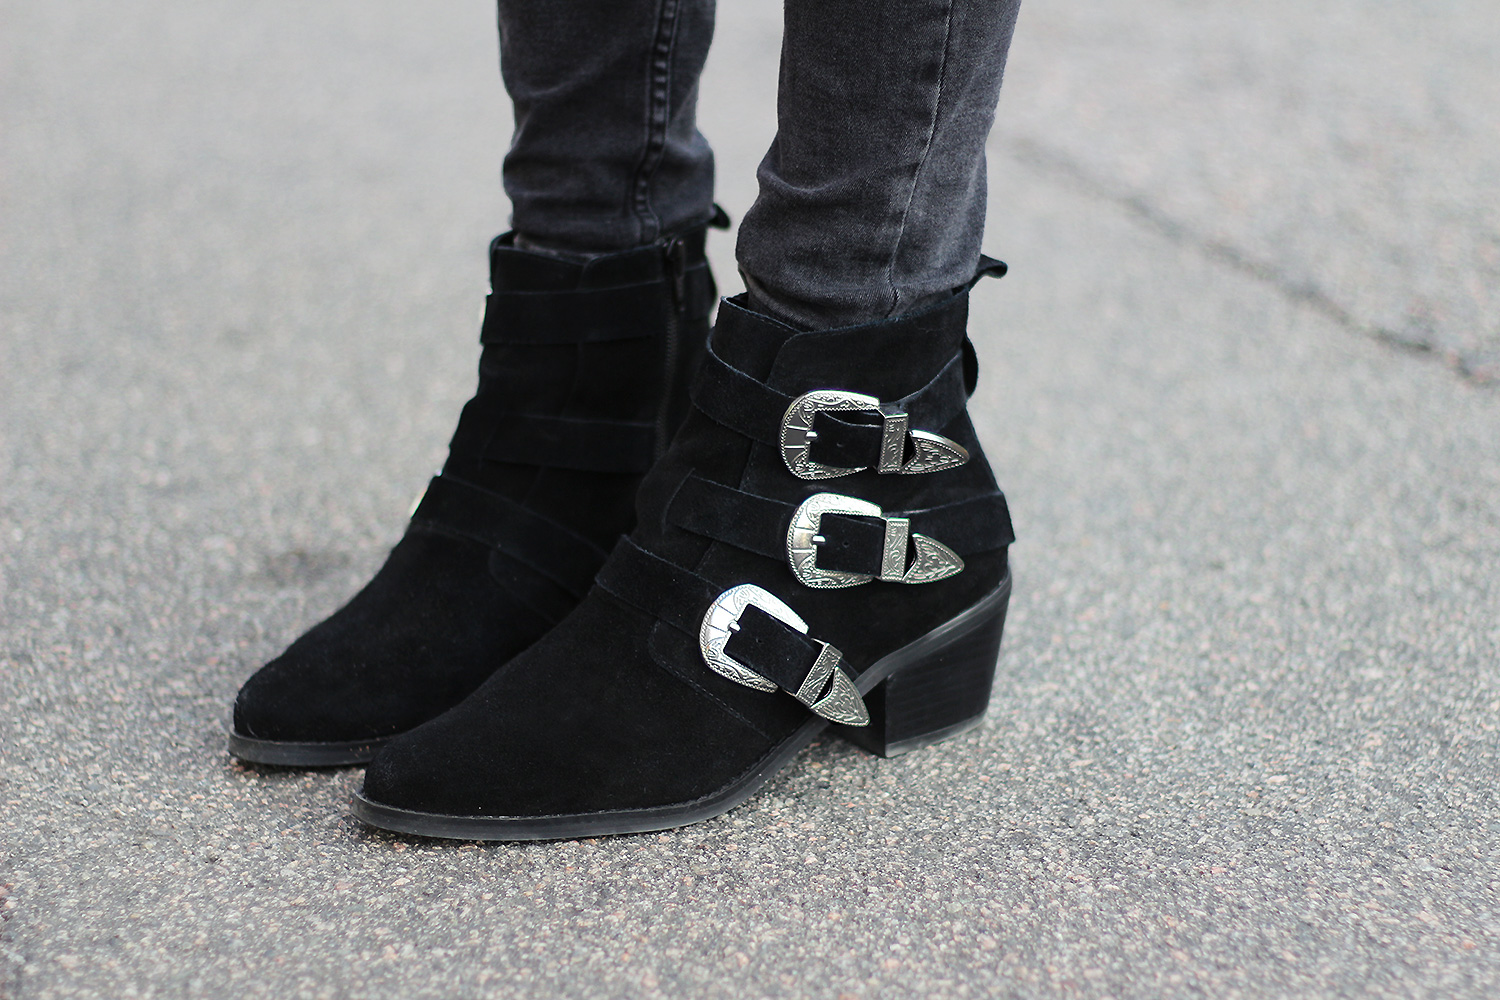 buckle-boots@2x